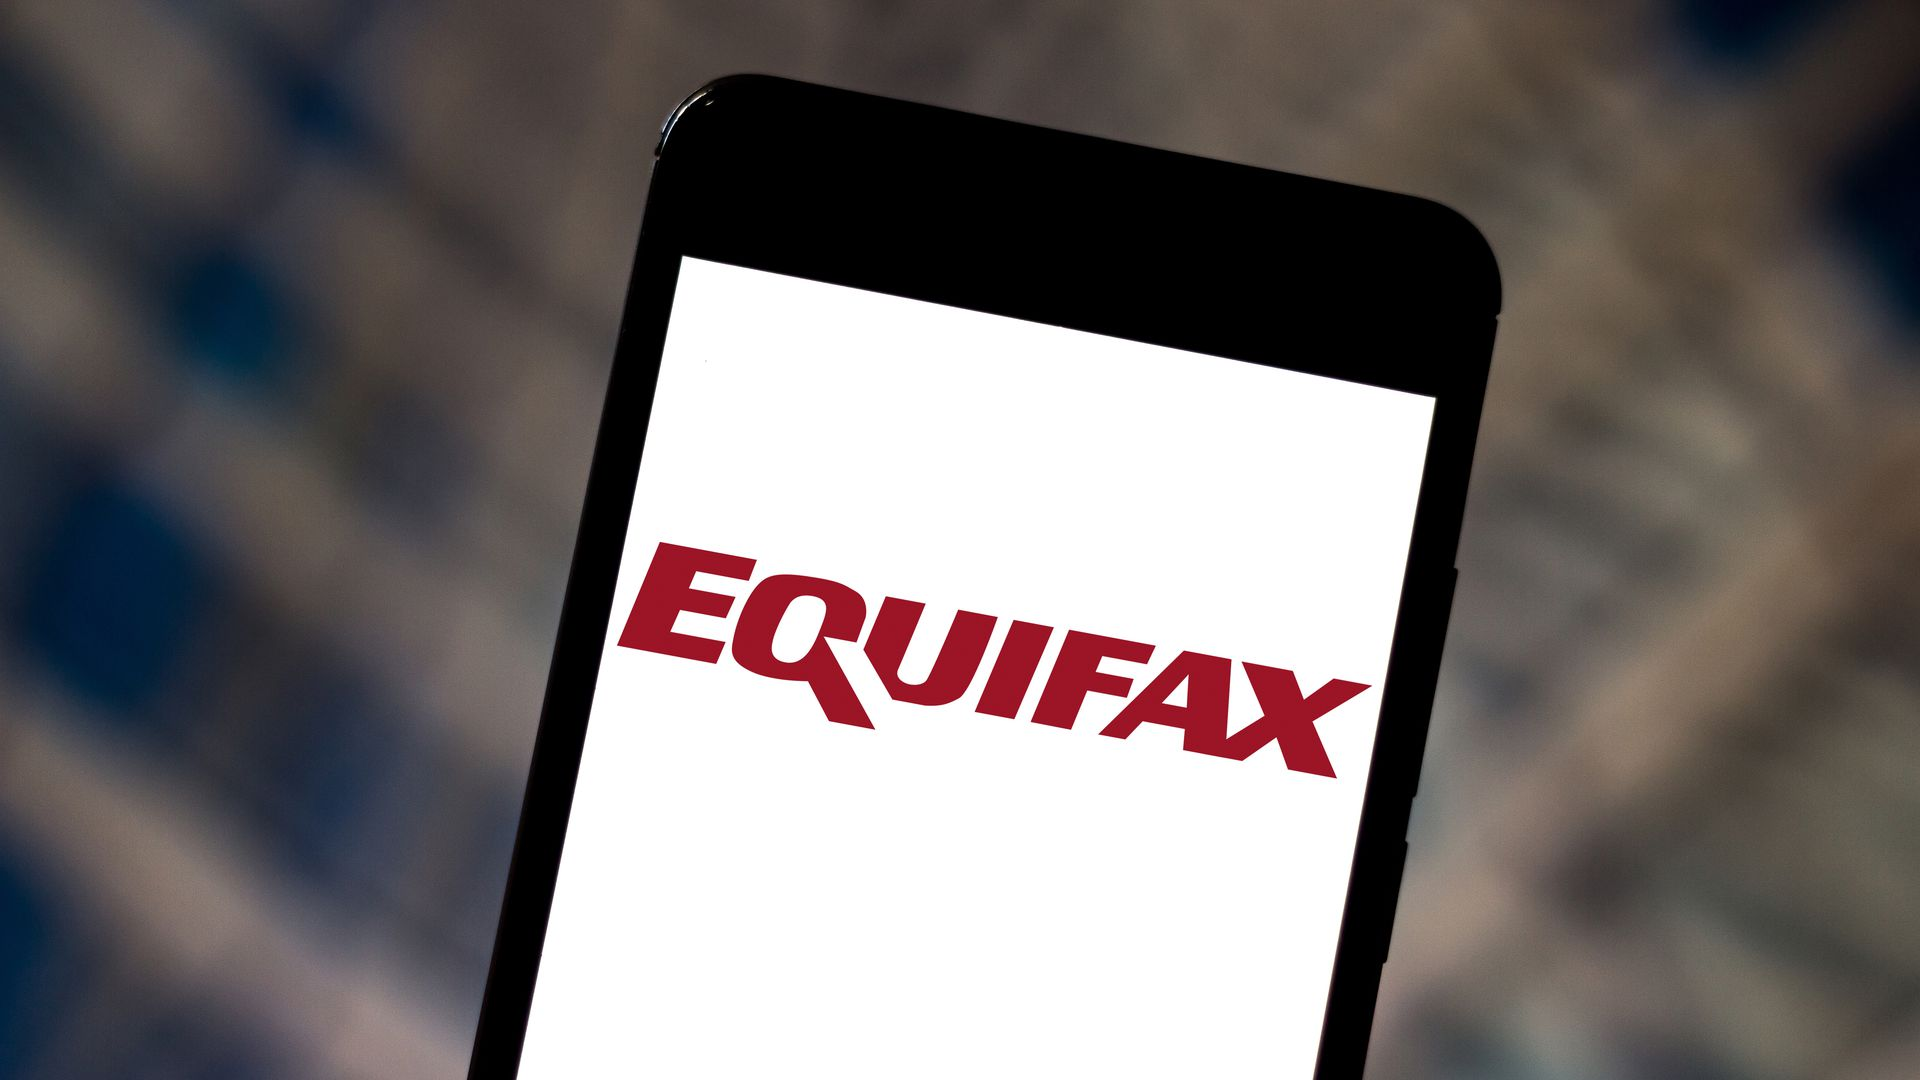 This image shows a phone with the Equifax logo.